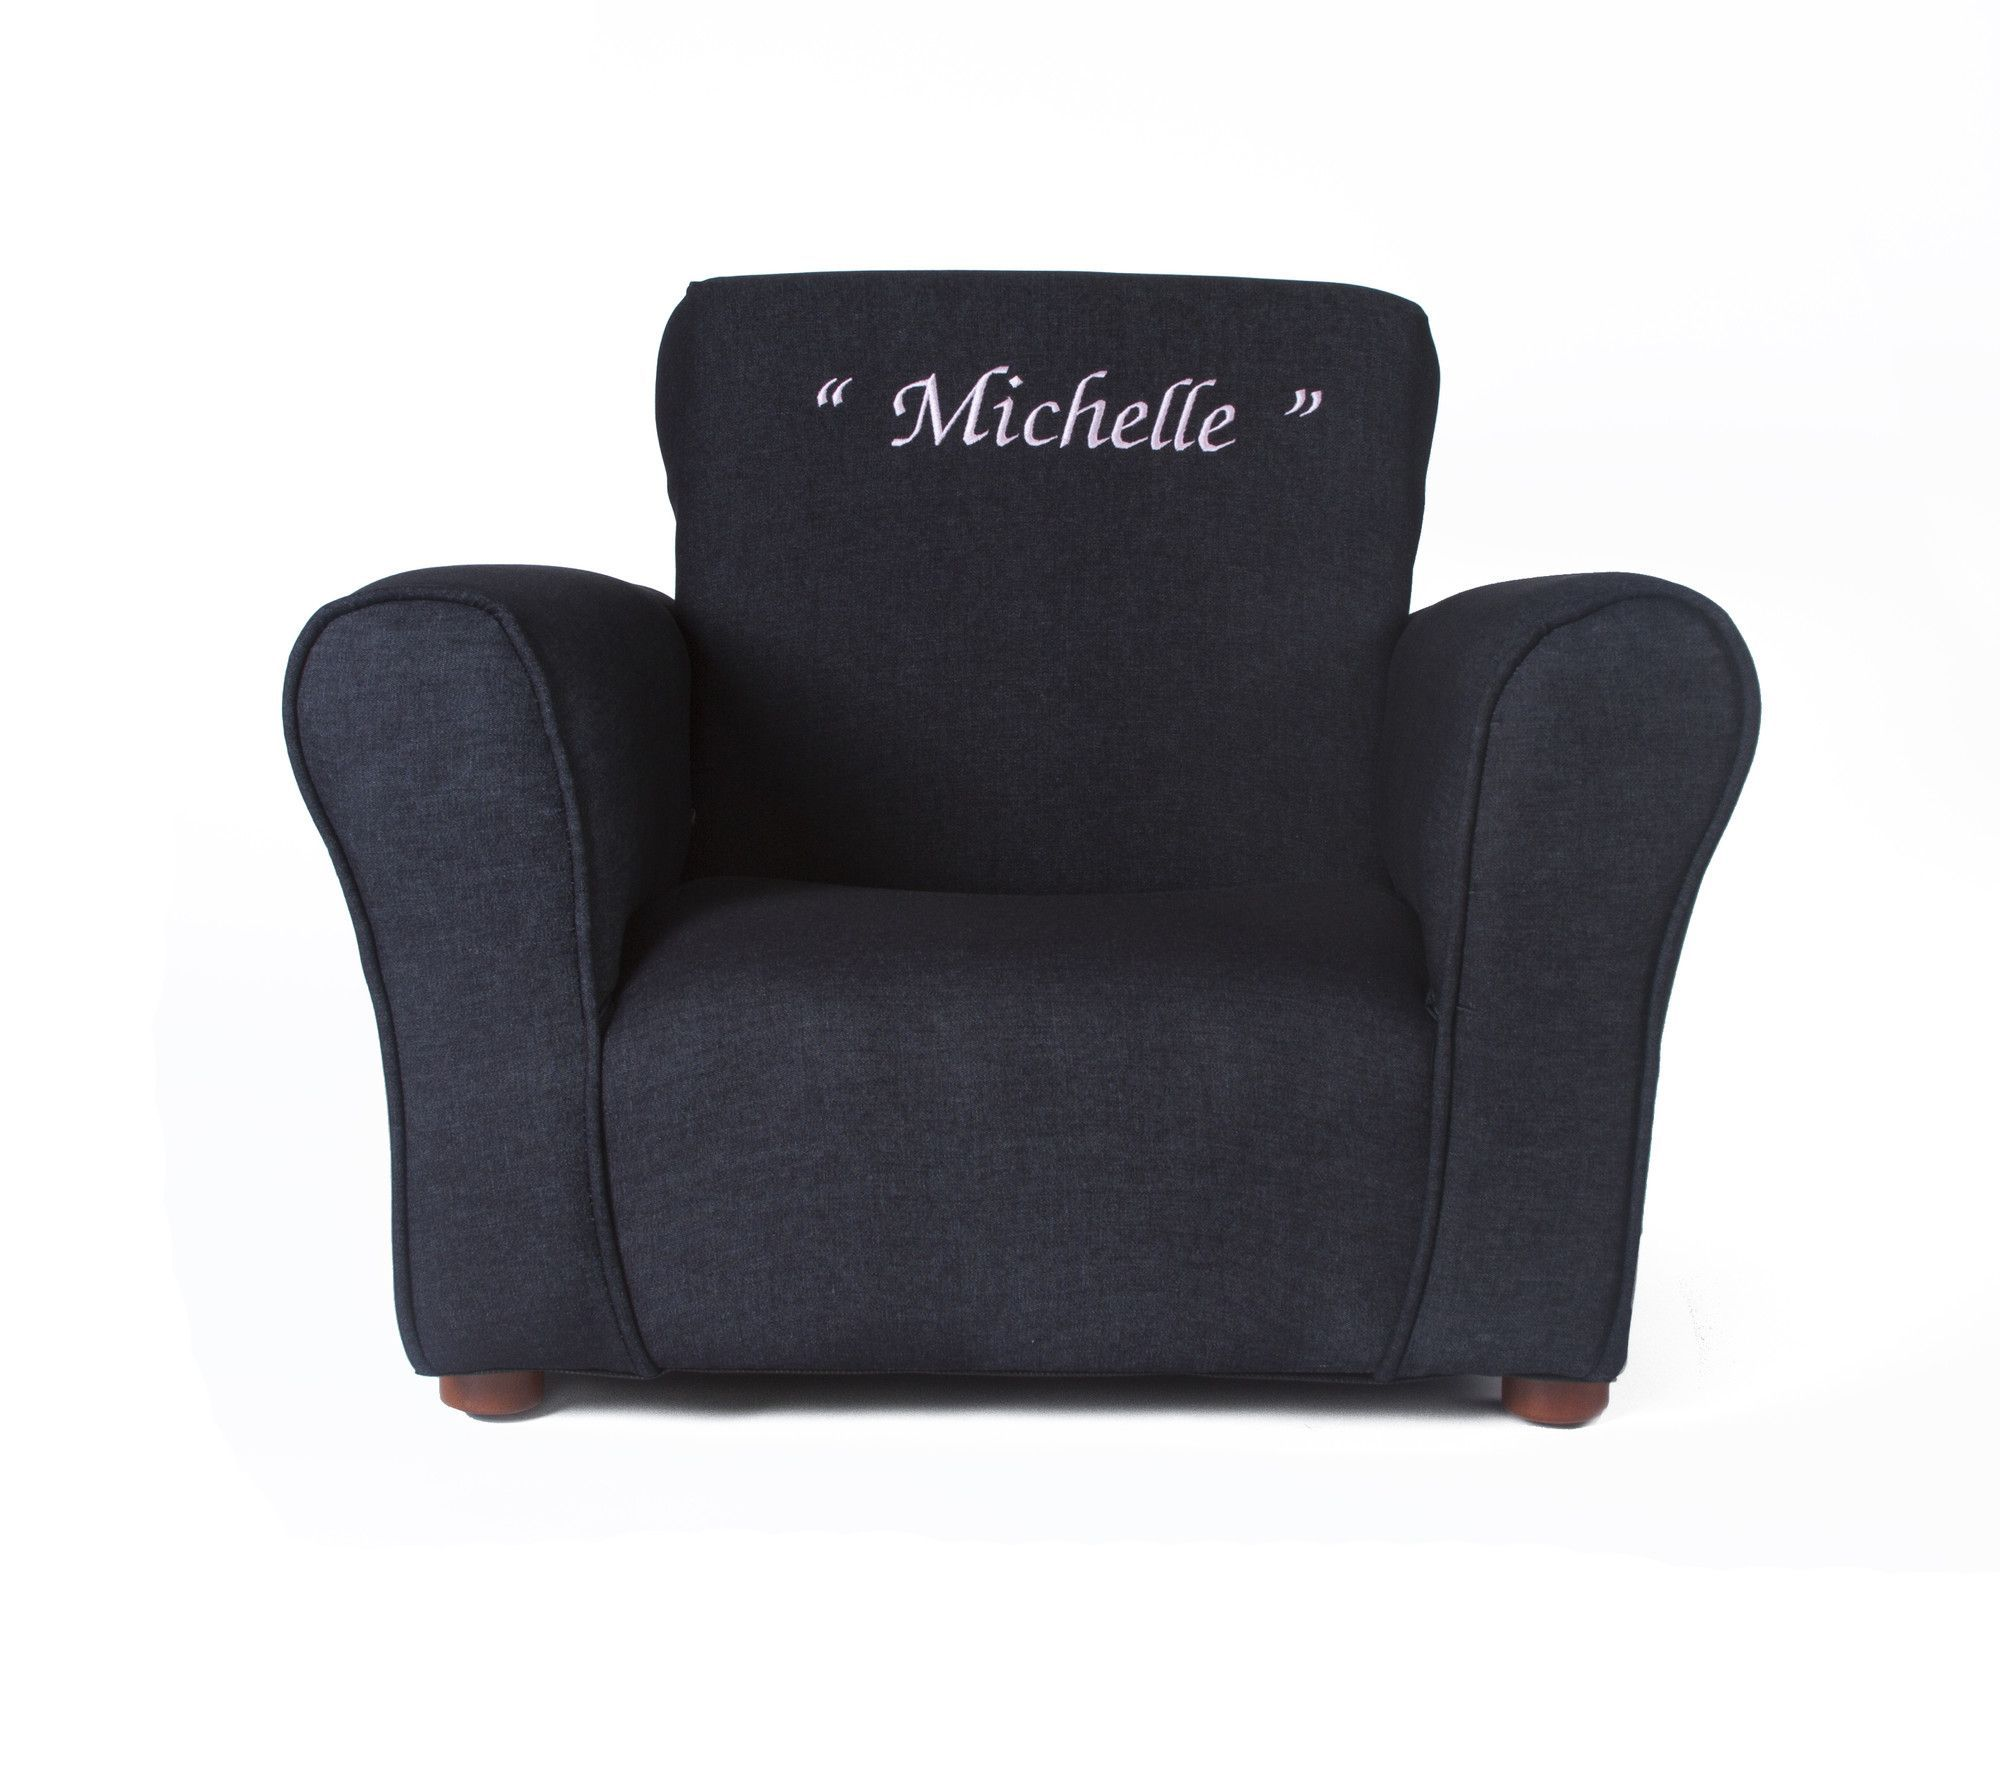 Personalized Chairs For Baby Blue Denim Personalized Kids Club Chair Products Personalized